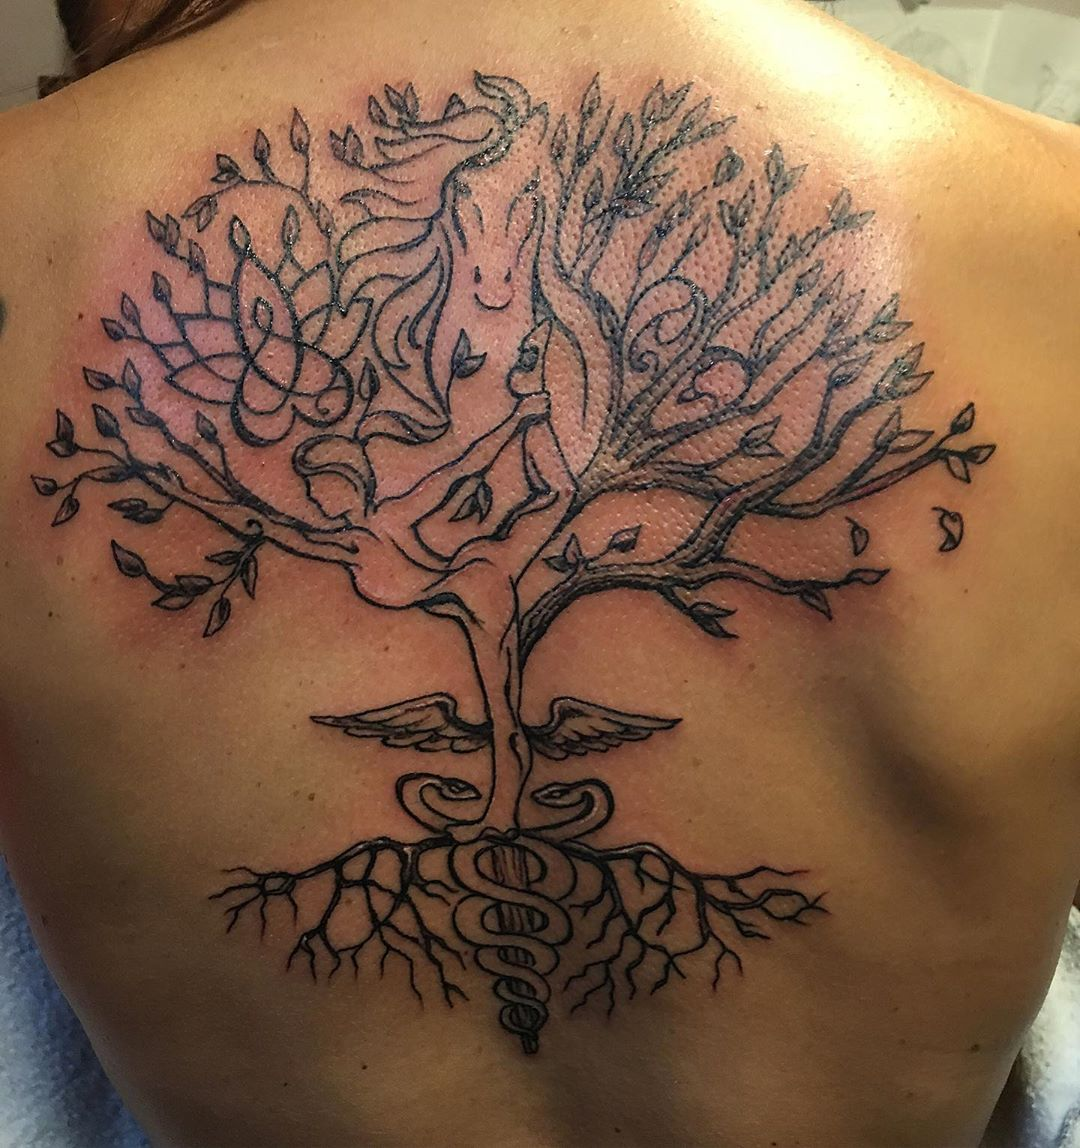 Yoga tree #yogini #nurselife #momtattoo #treetattoos #yogatattoos #horsetattoos #symbolictattoo #customtattoo #createyourown #tattoobliss #nursingtattoo #backpiece #tattooedmom